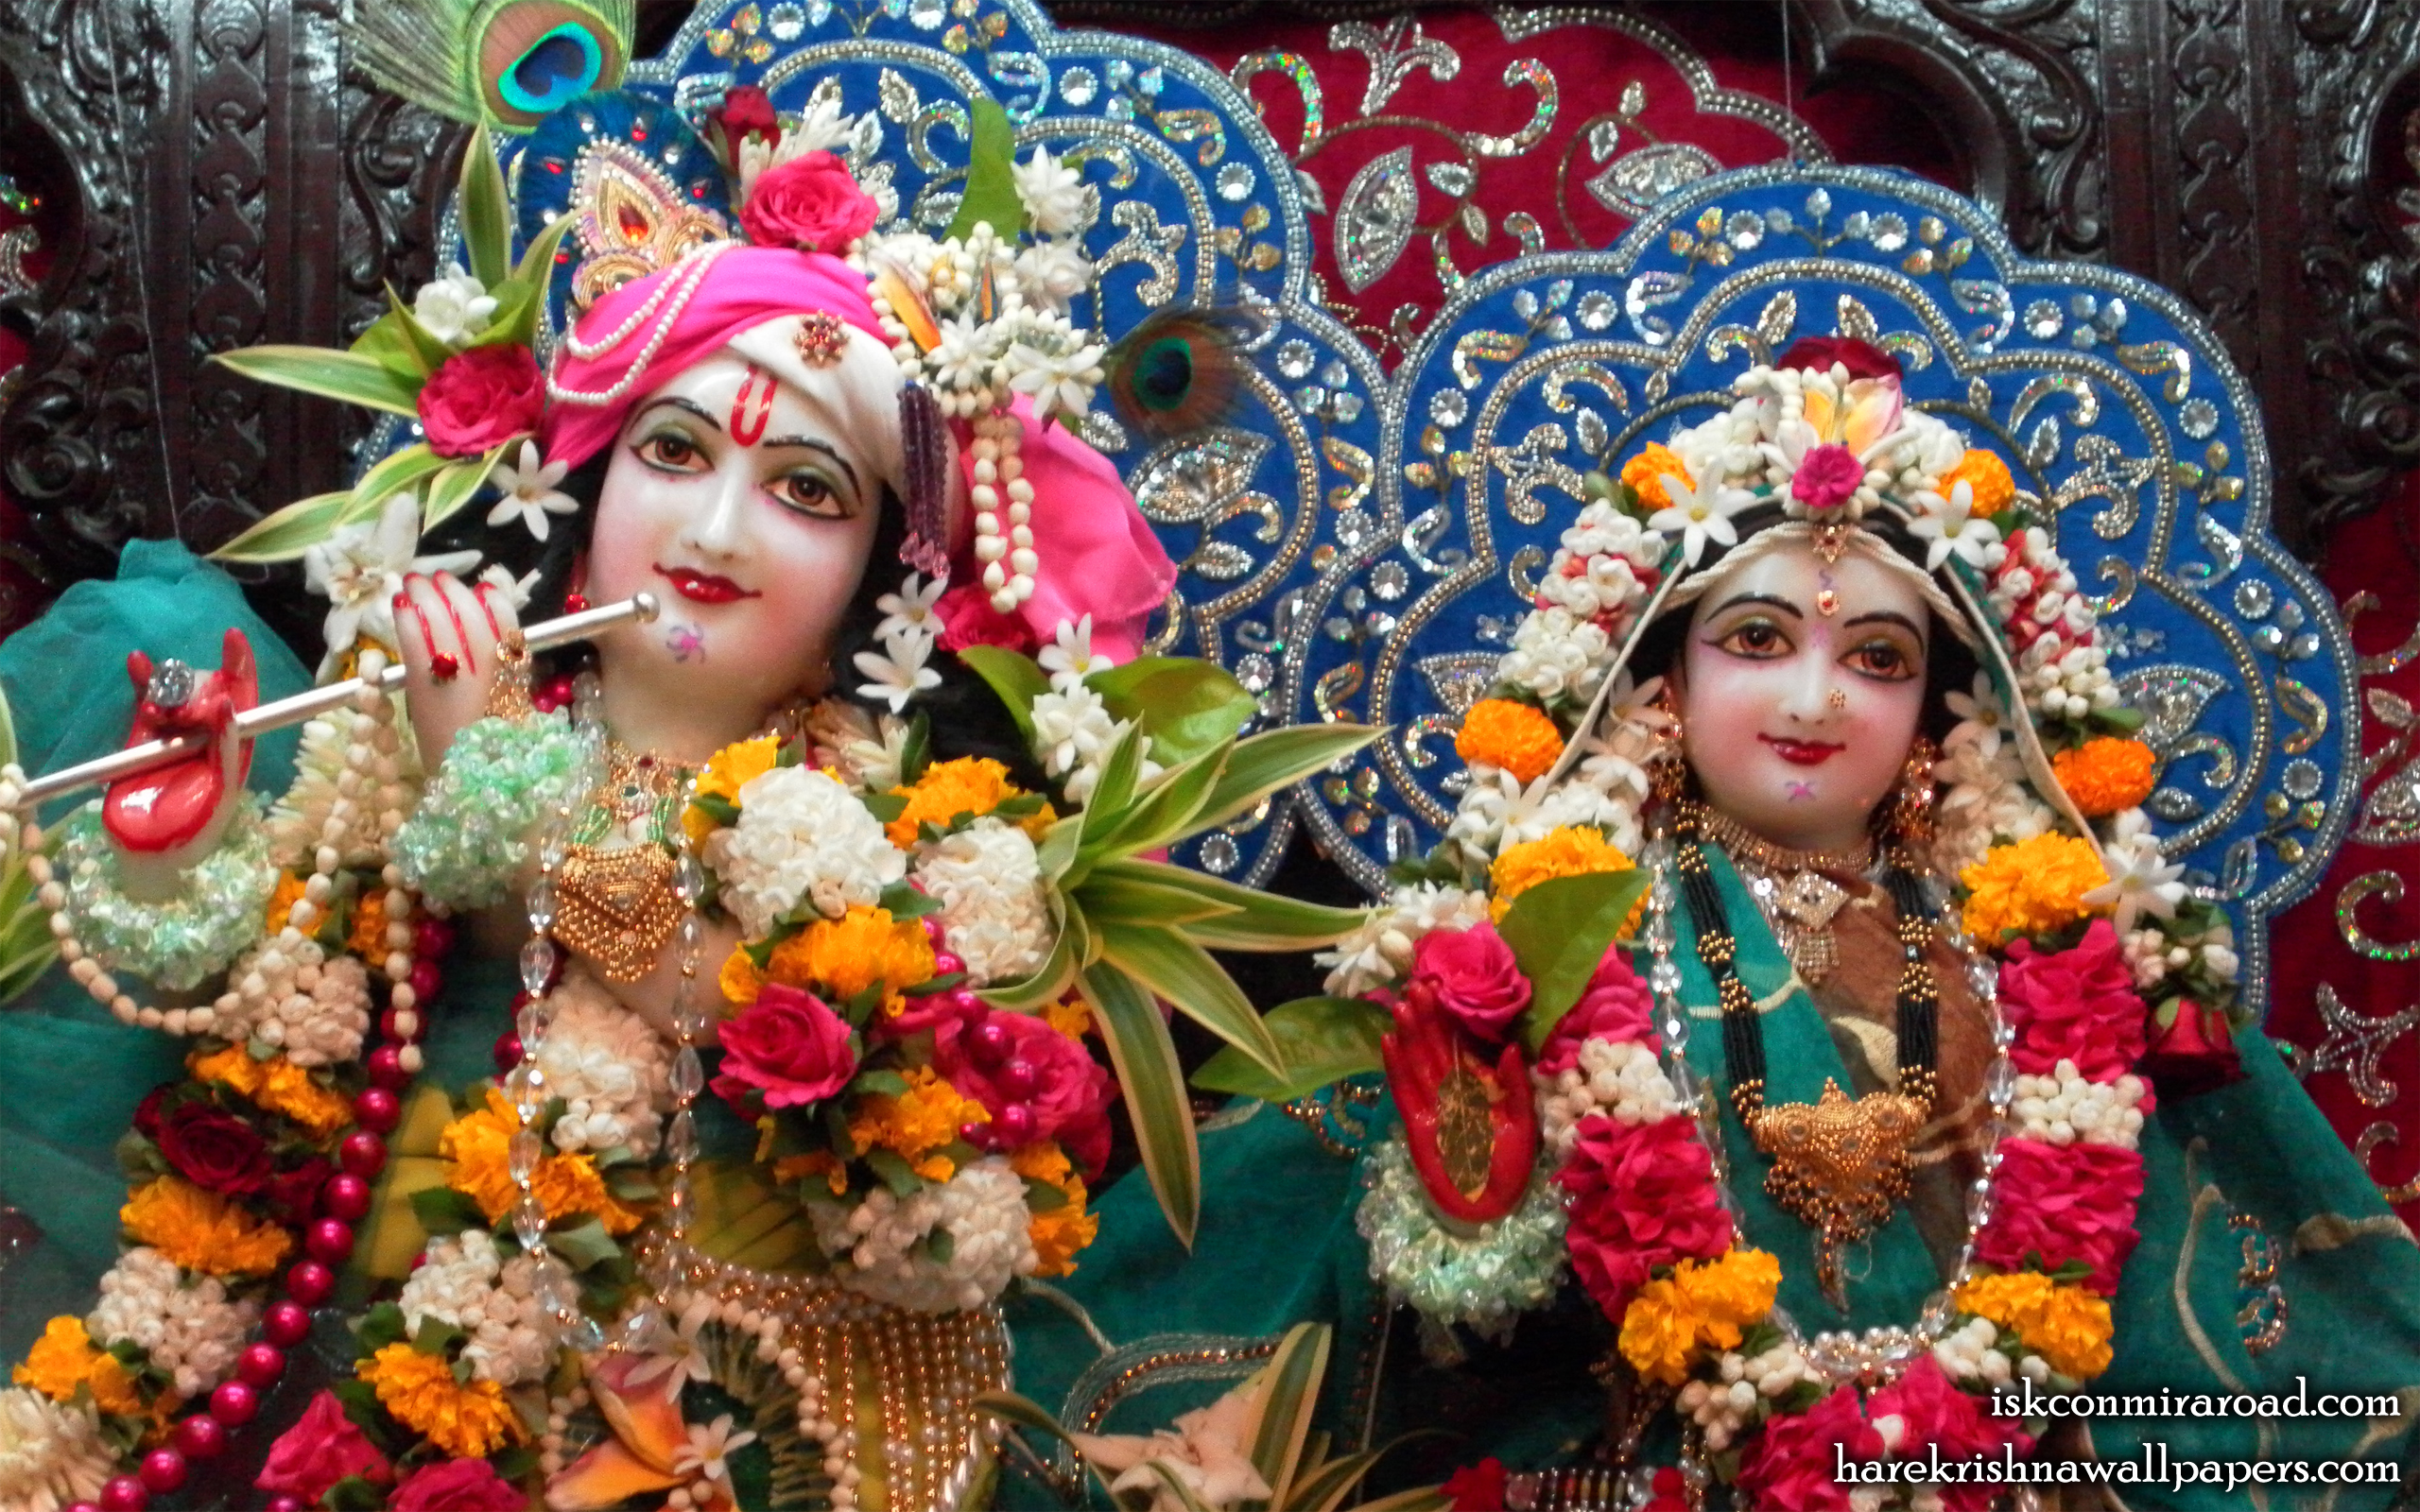 Sri Sri Radha Giridhari Close up Wallpaper (017) Size 2560x1600 Download